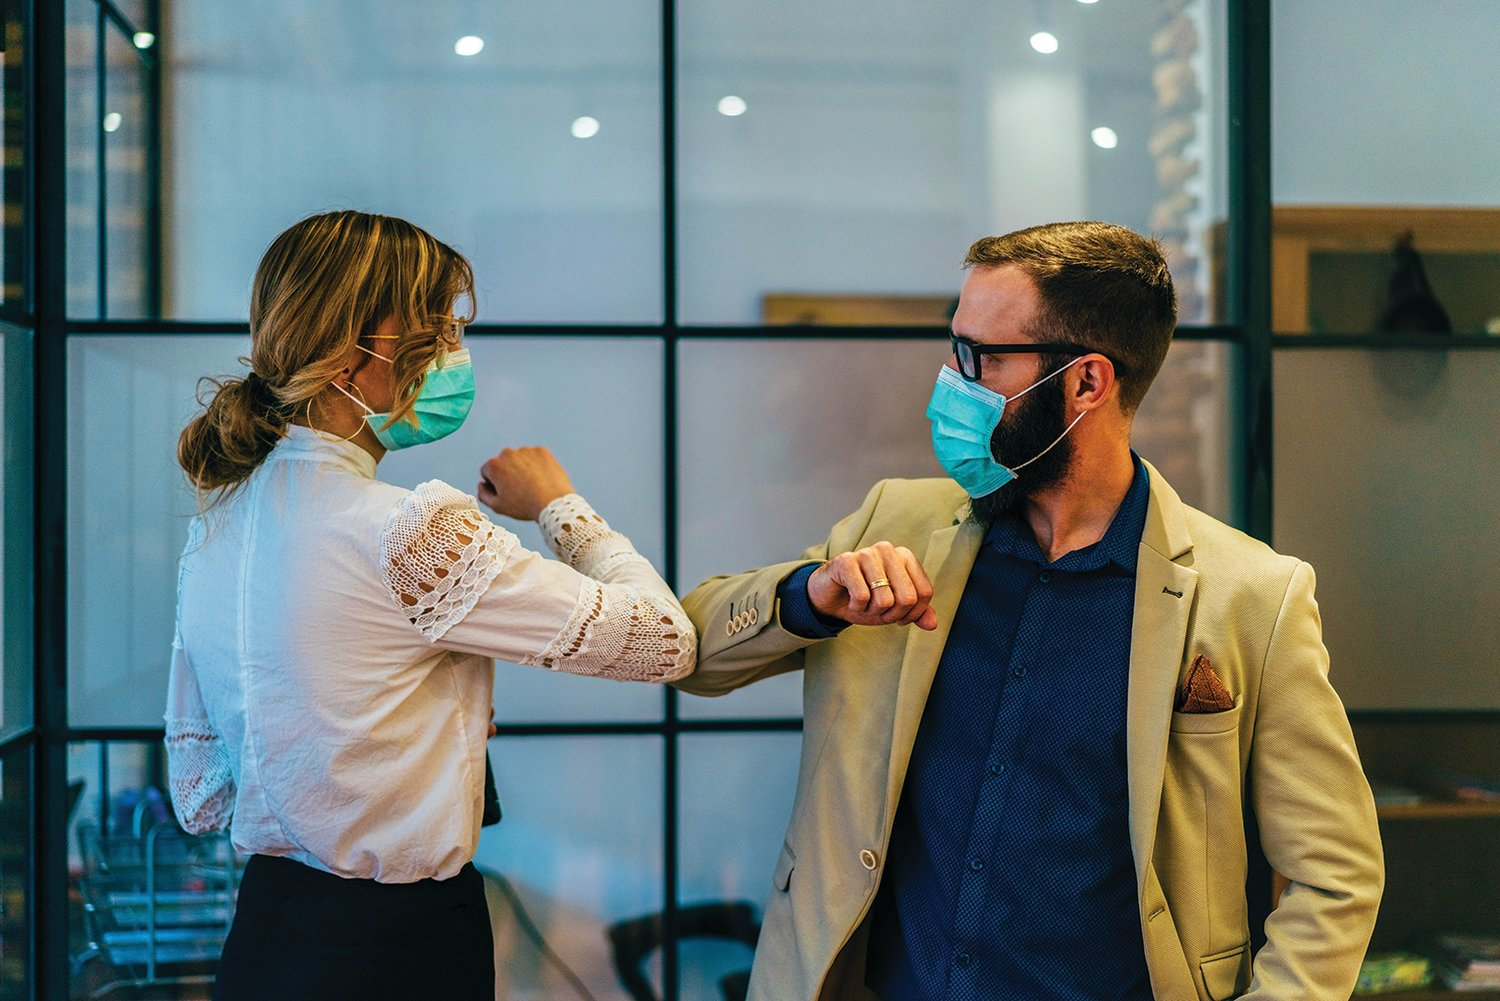 The best project management methodology to implement during the pandemic?